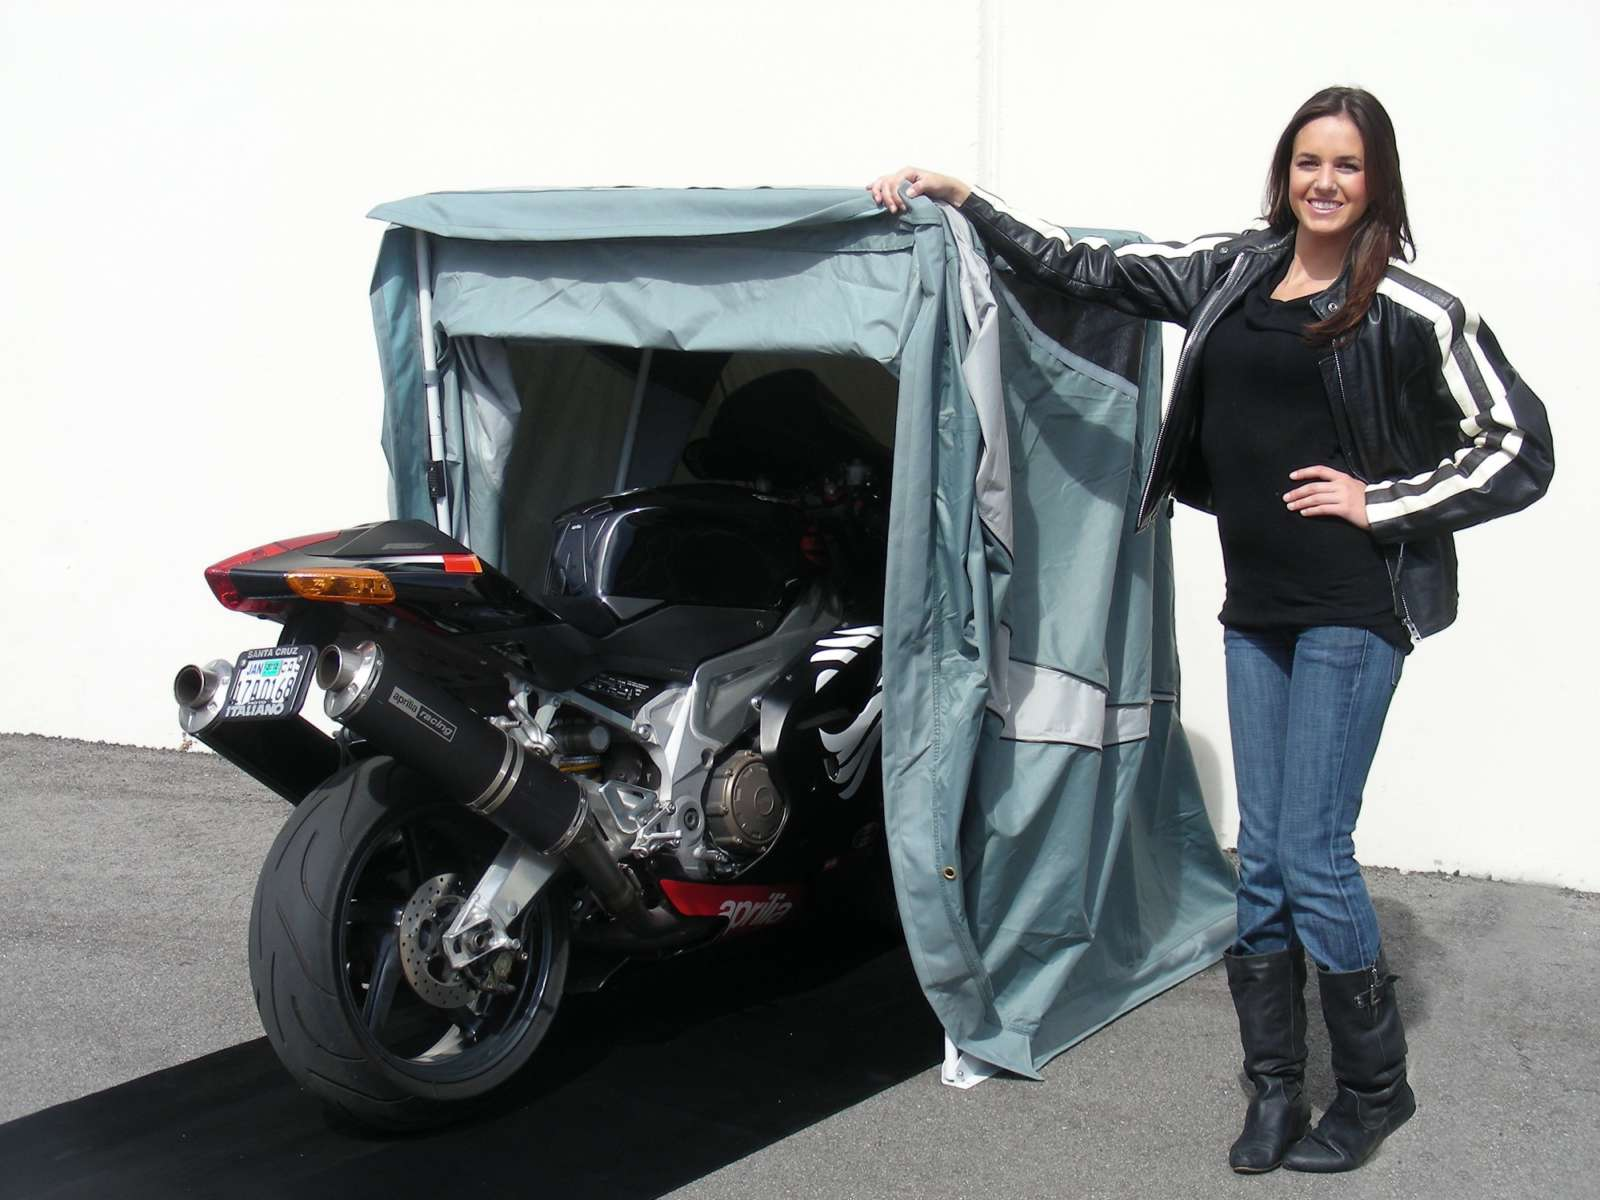 Portable Motorcycle Enclosures : Speed way motorcycle shelters a miniature weather proof